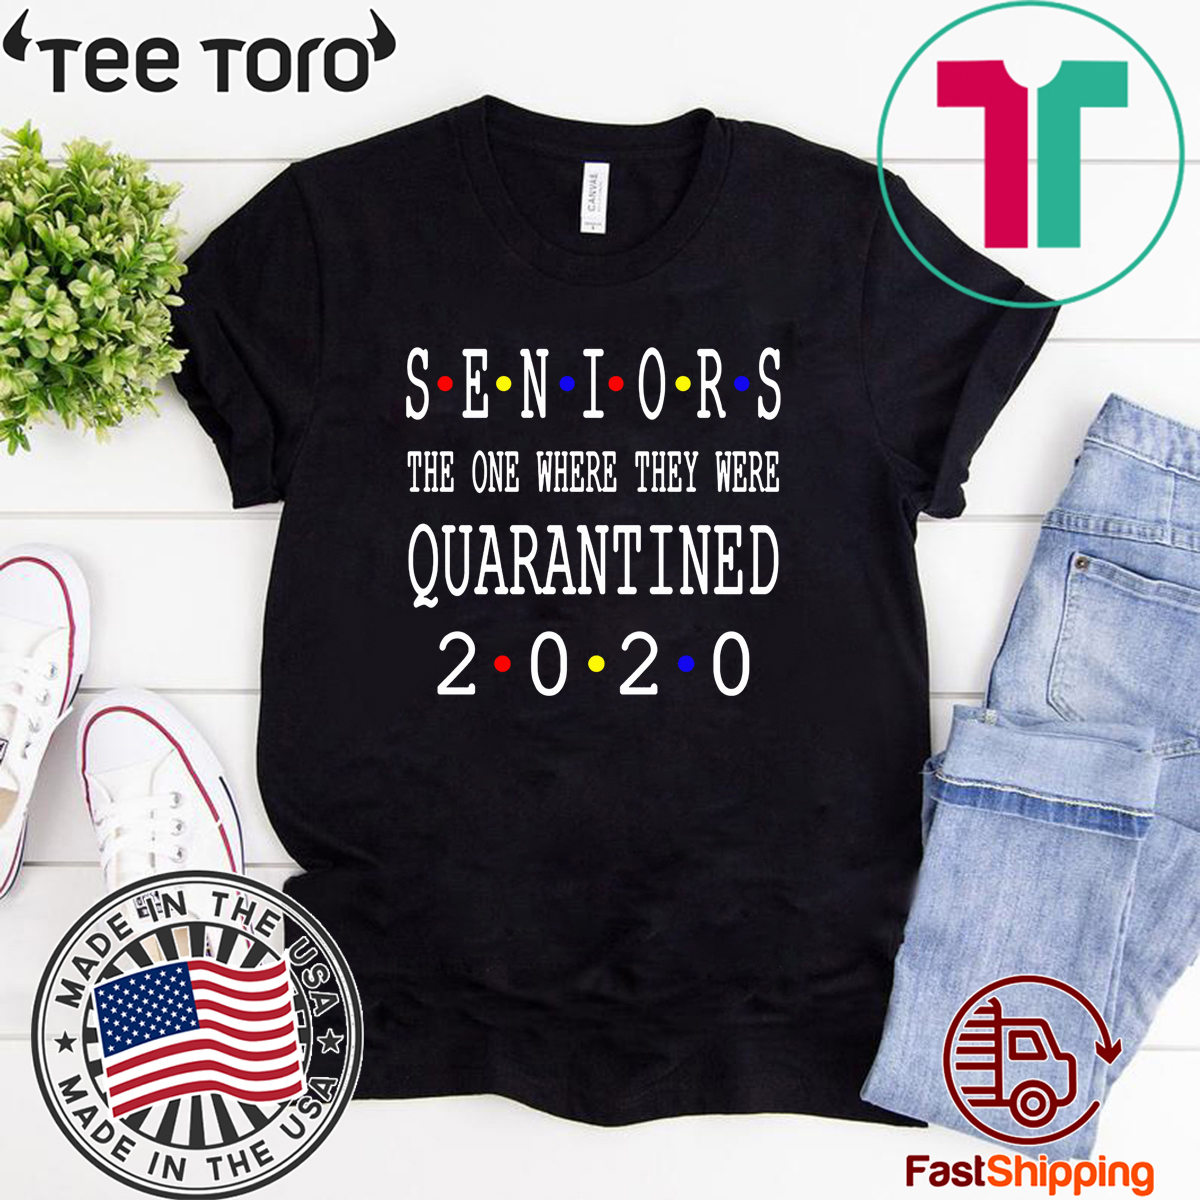 Class Of 2020 Graduation Senior Funny Quarantine Limited Edition T-Shirt - Senior 2020 Shit Getting Real Shirt